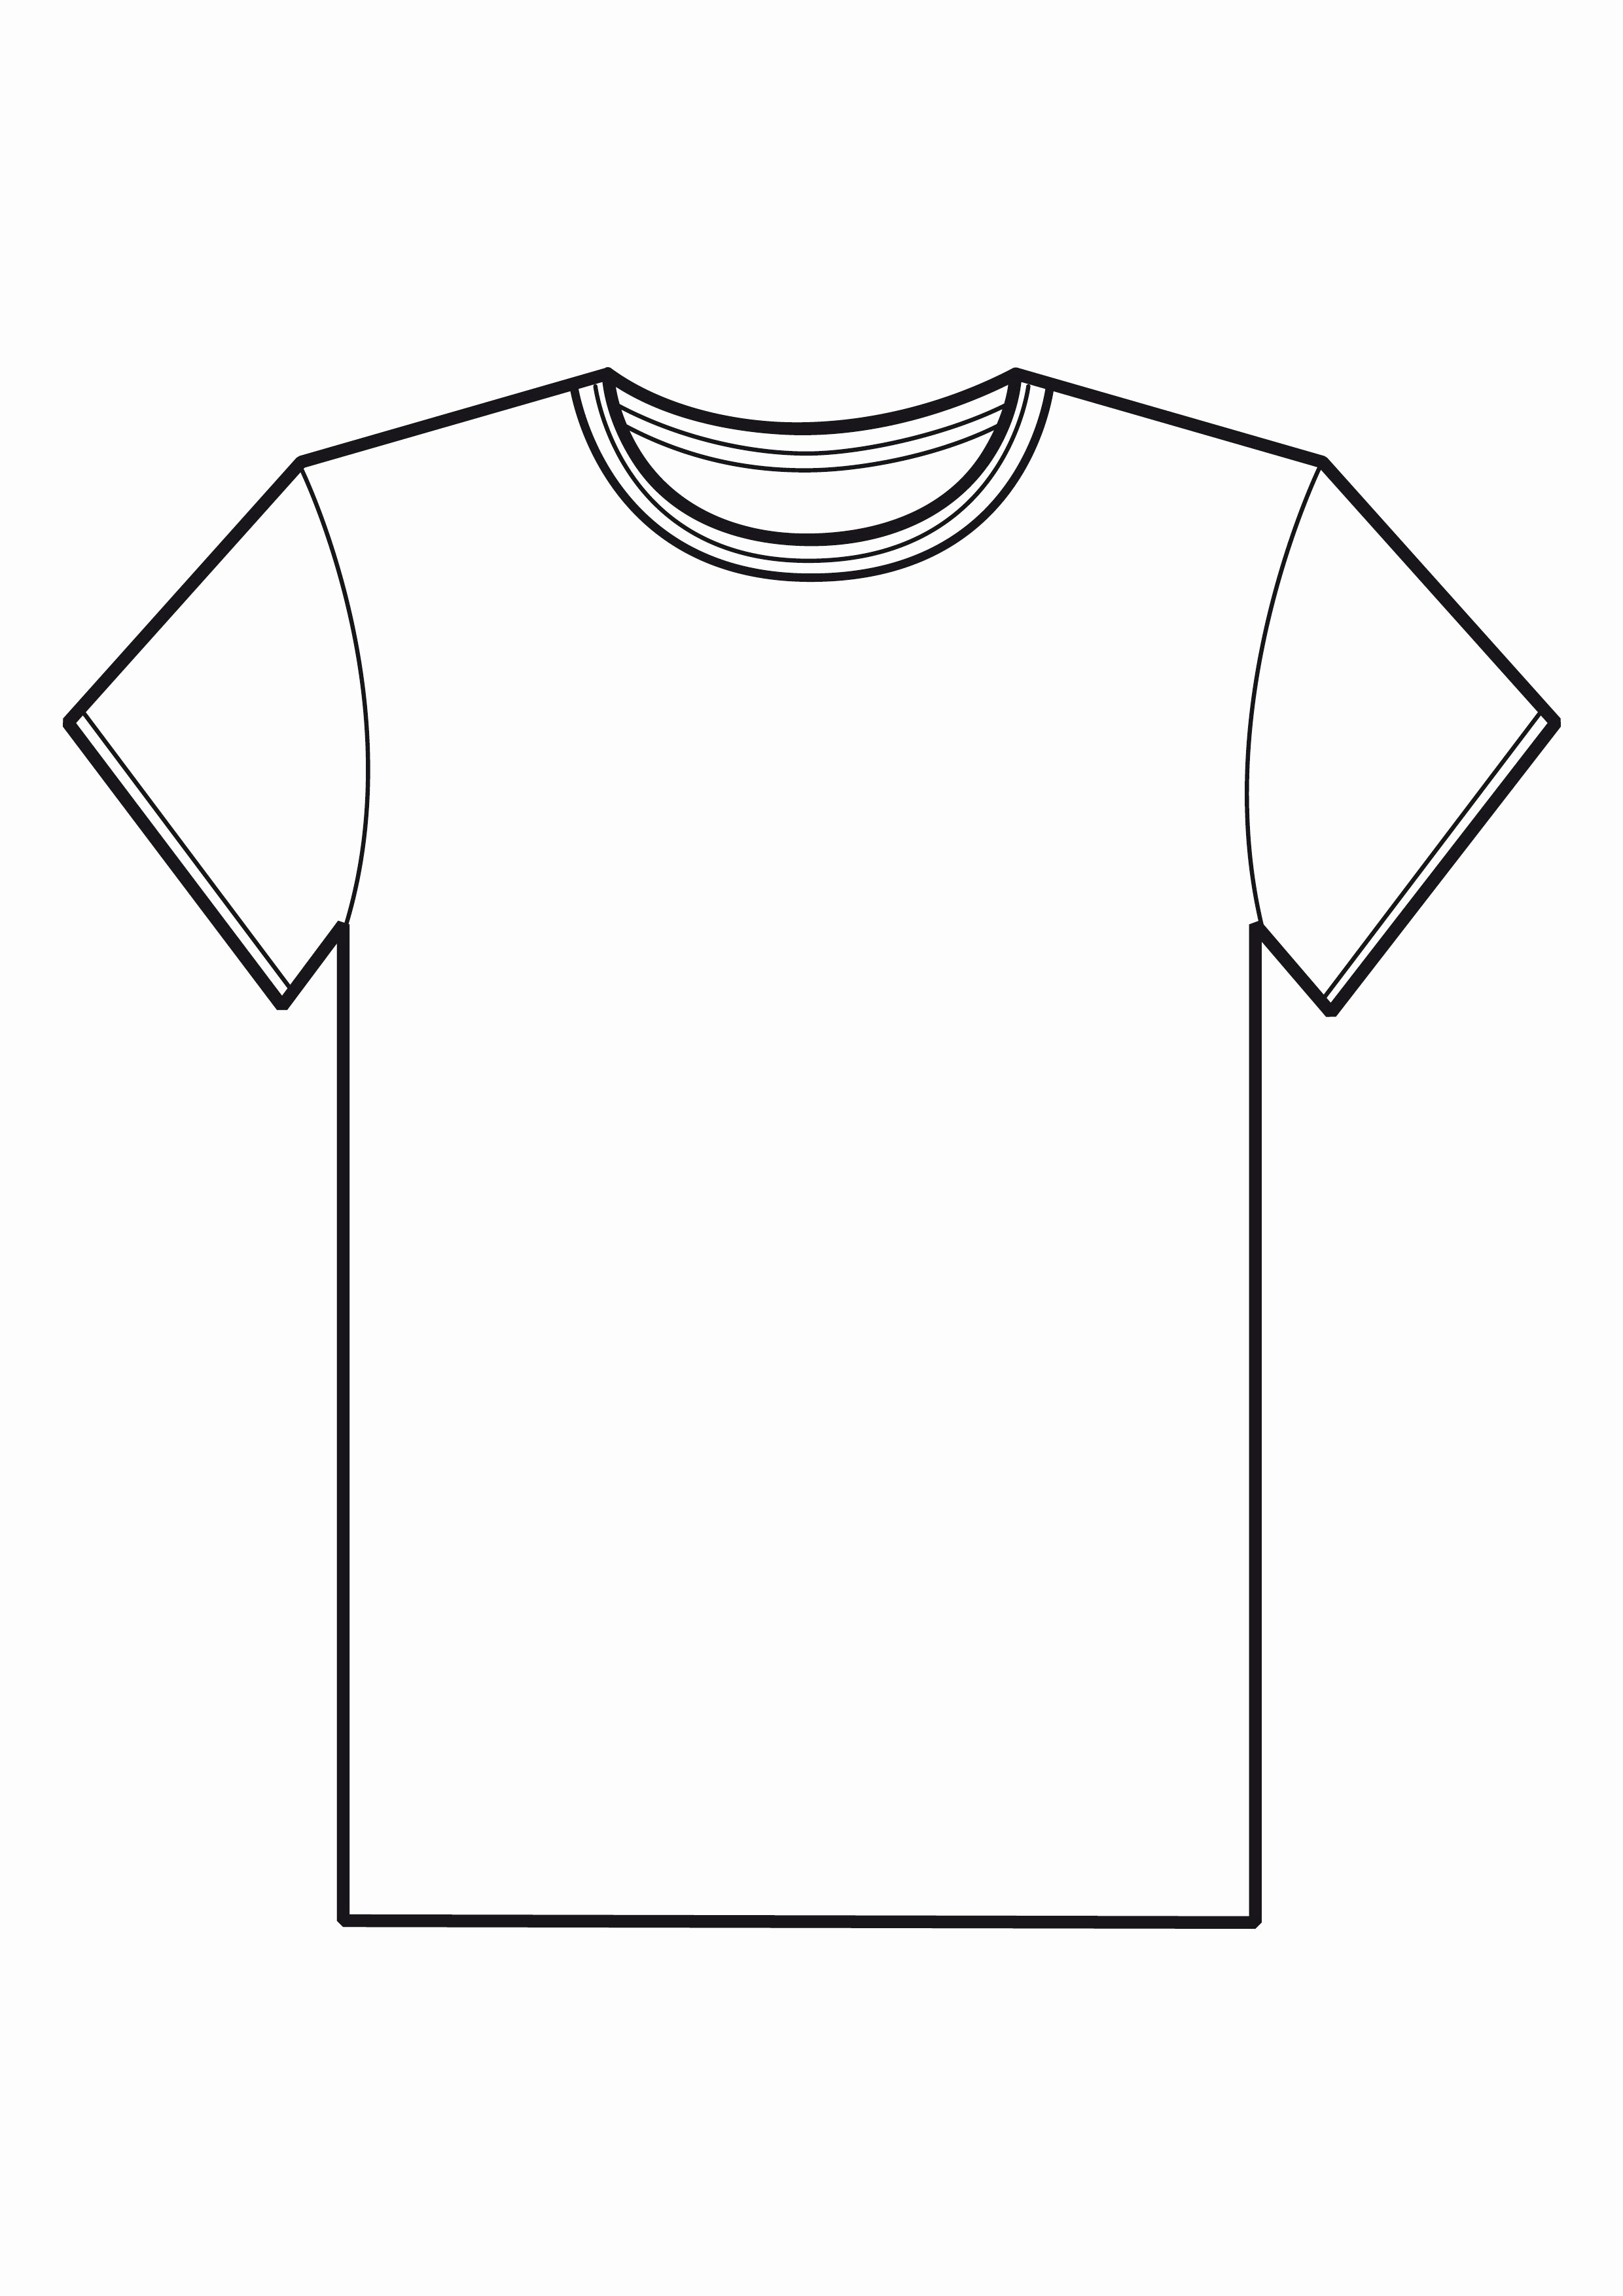 T shirt design clipart png black and white stock T Shirt Design Clipart Sasa Tshirt Clip Art Net Intended For ... png black and white stock